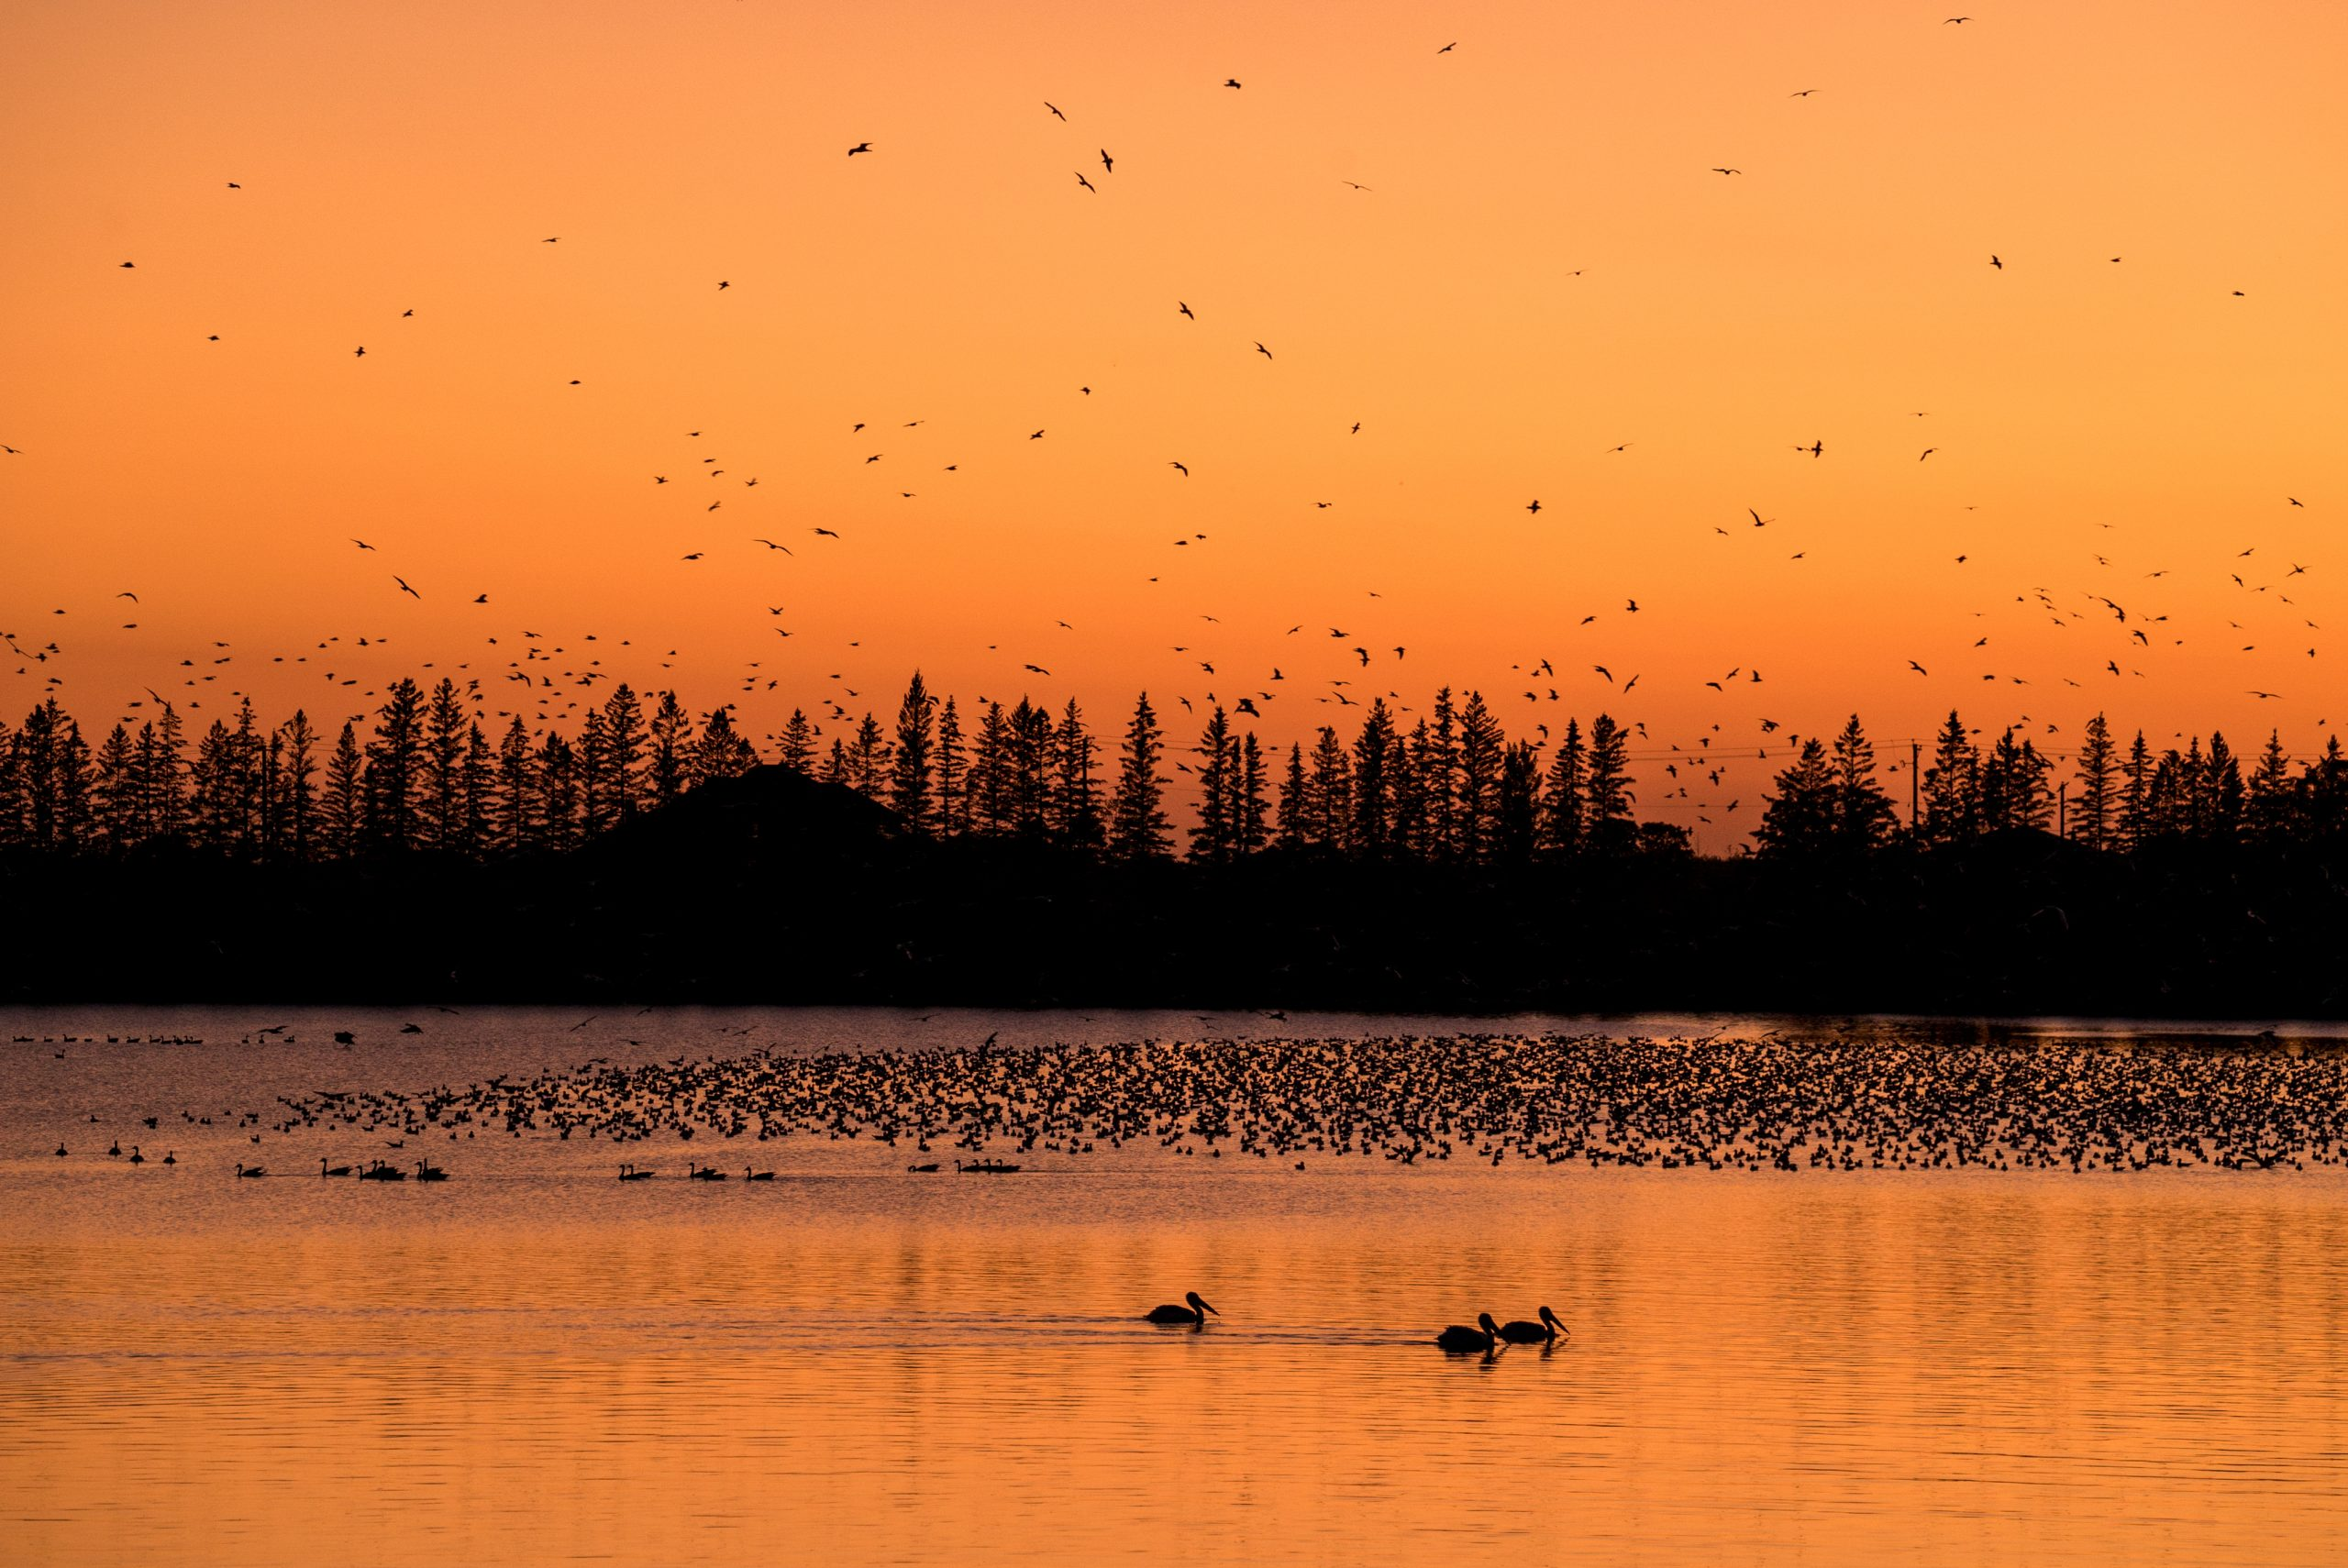 Silhouettes of geese fly over the lake at sunset